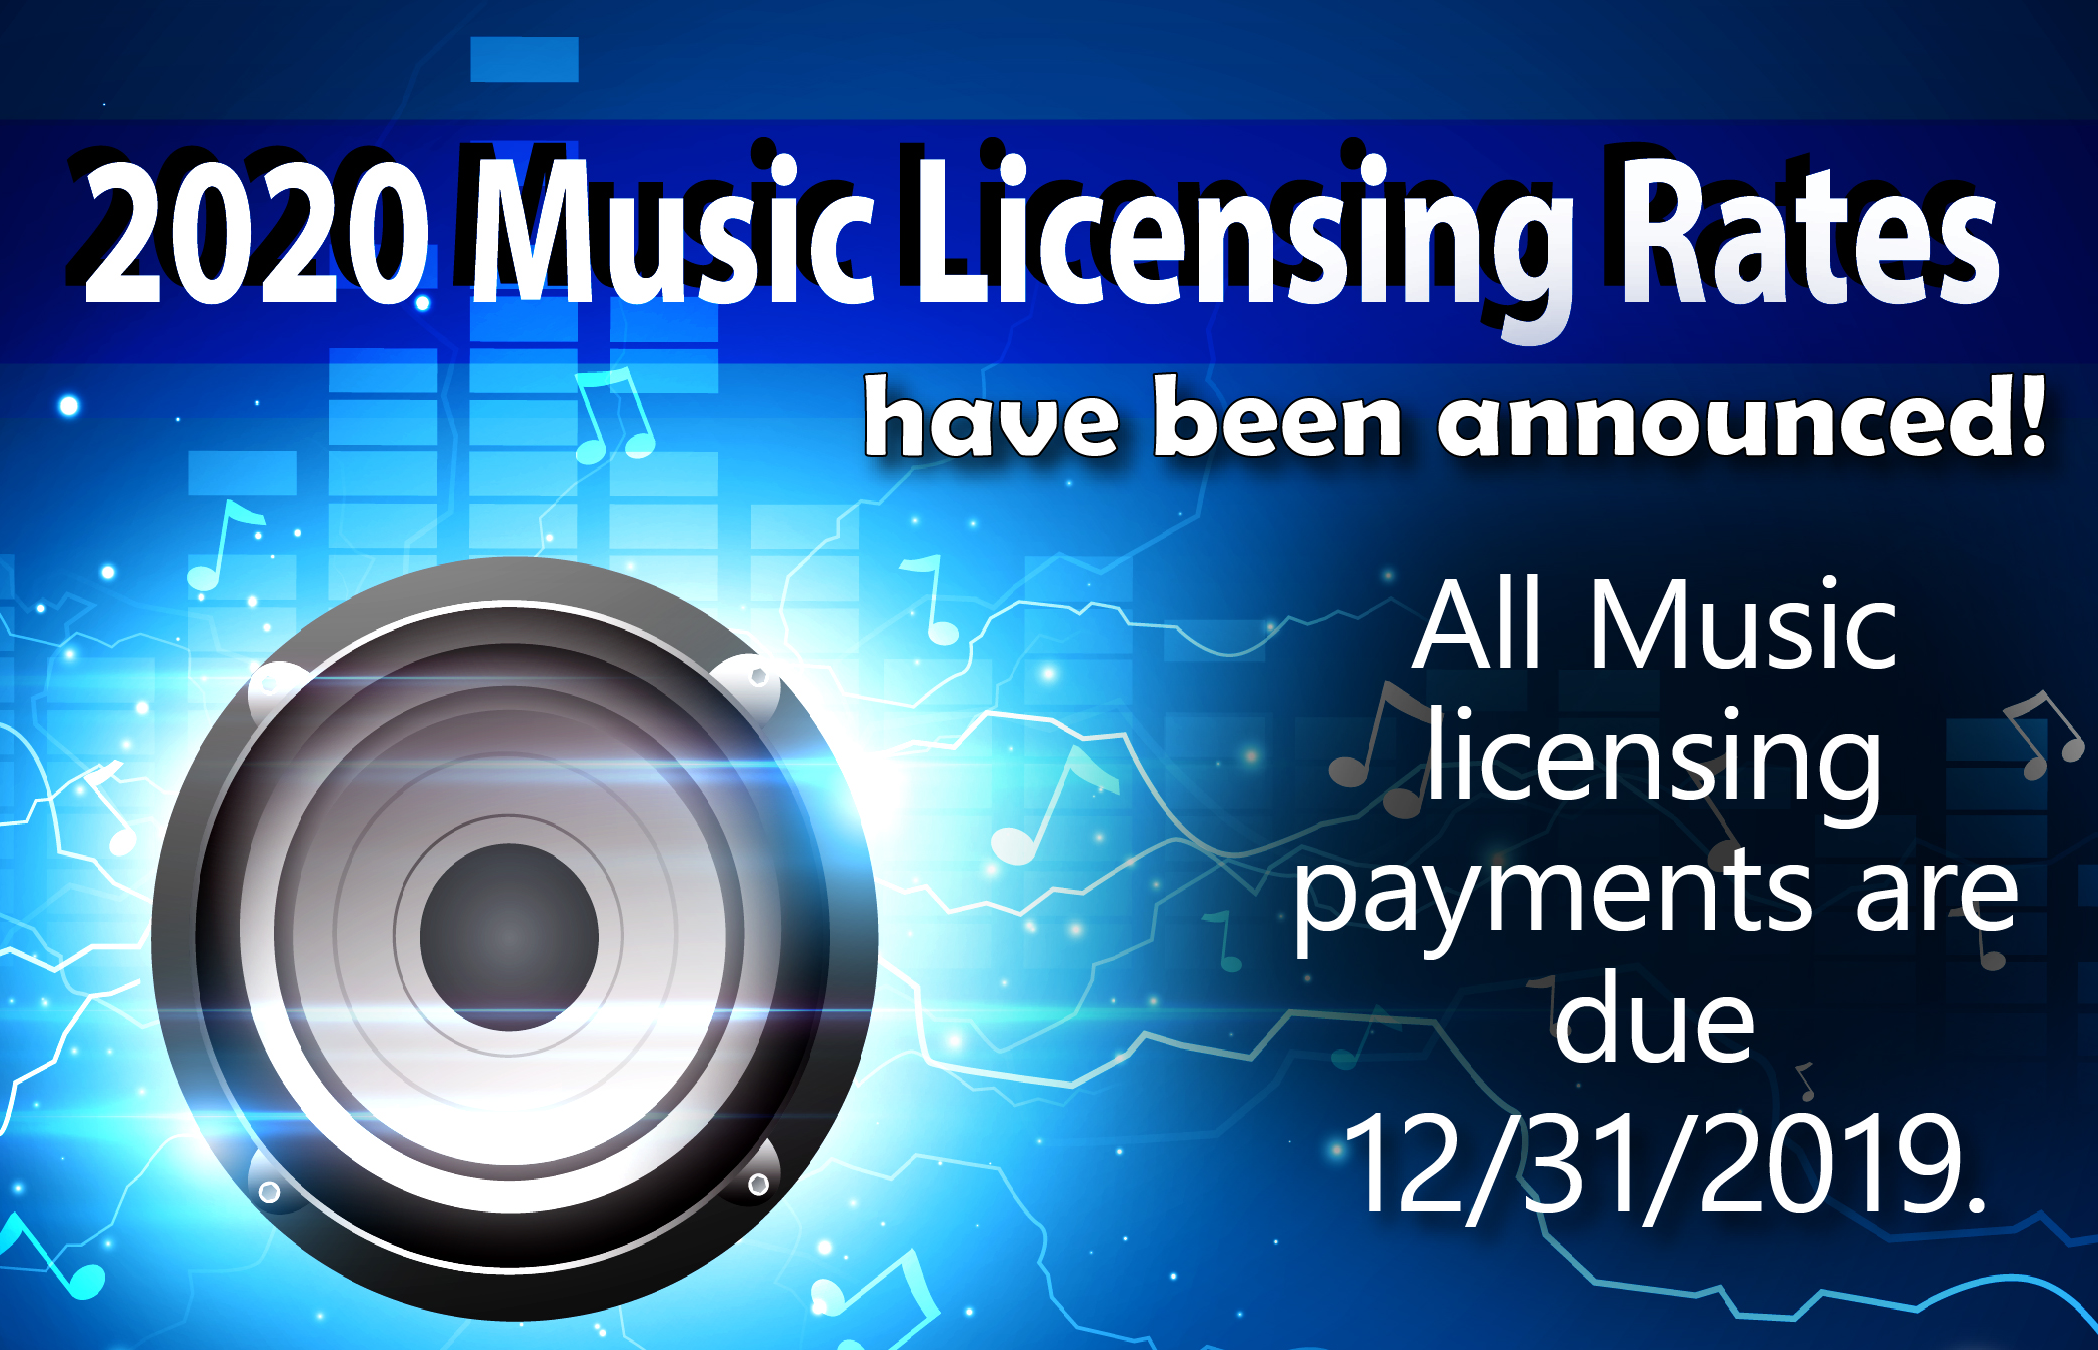 Music Licensing Announcement